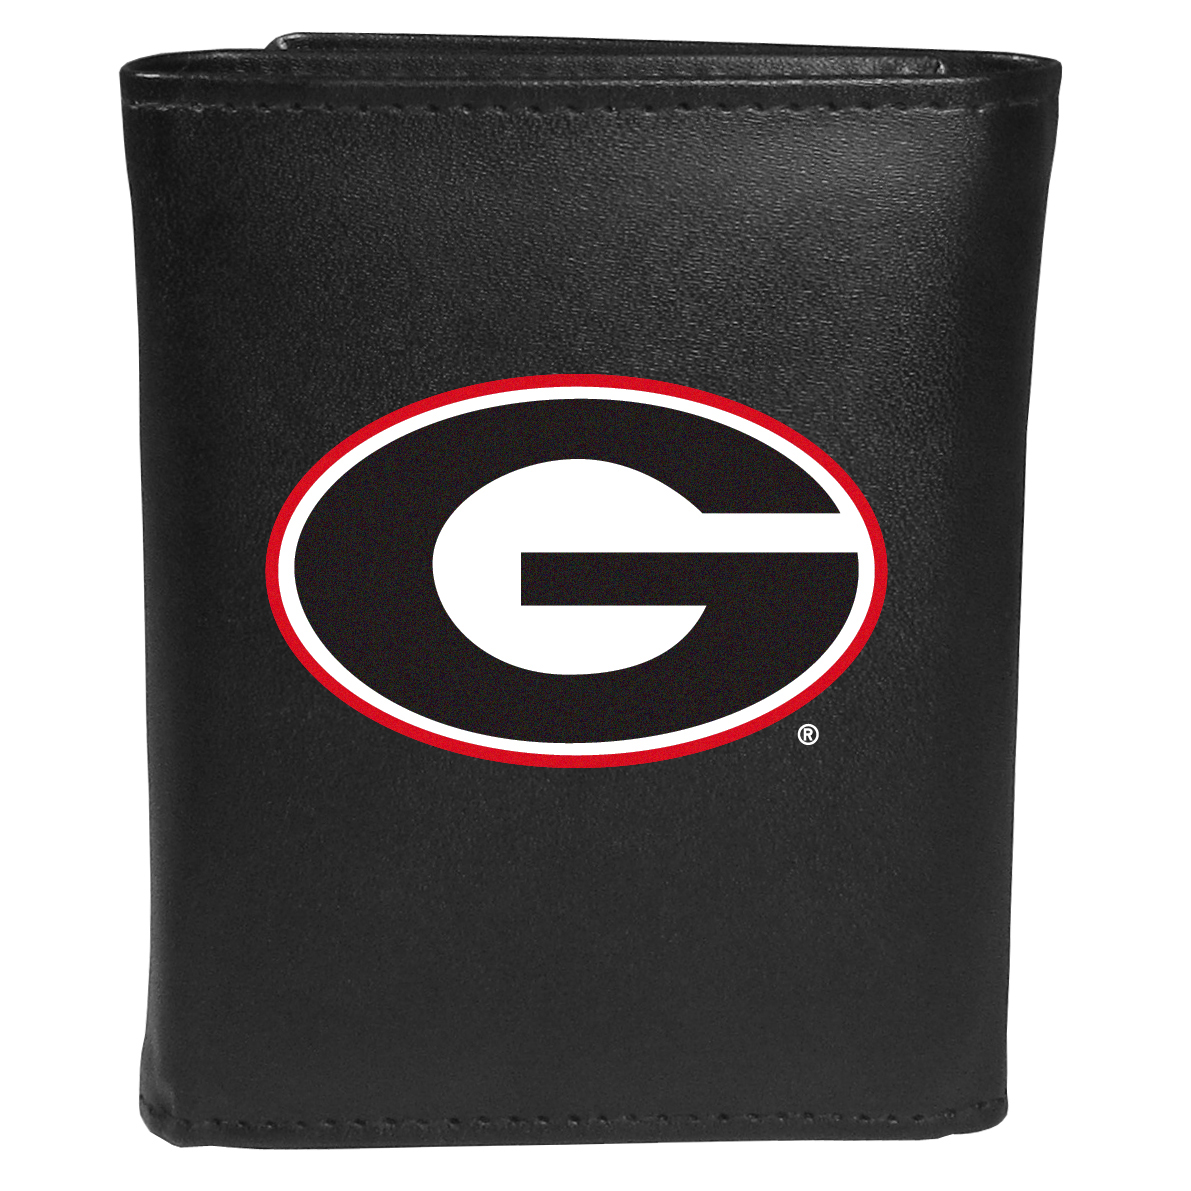 Georgia Bulldogs Tri-fold Wallet Large Logo - Sports fans do not have to sacrifice style with this classic tri-fold wallet that sports theGeorgia Bulldogs?extra large logo. This men's fashion accessory has a leather grain look and expert craftmanship for a quality wallet at a great price. The wallet features inner credit card slots, windowed ID slot and a large billfold pocket. The front of the wallet features an extra large printed team logo.